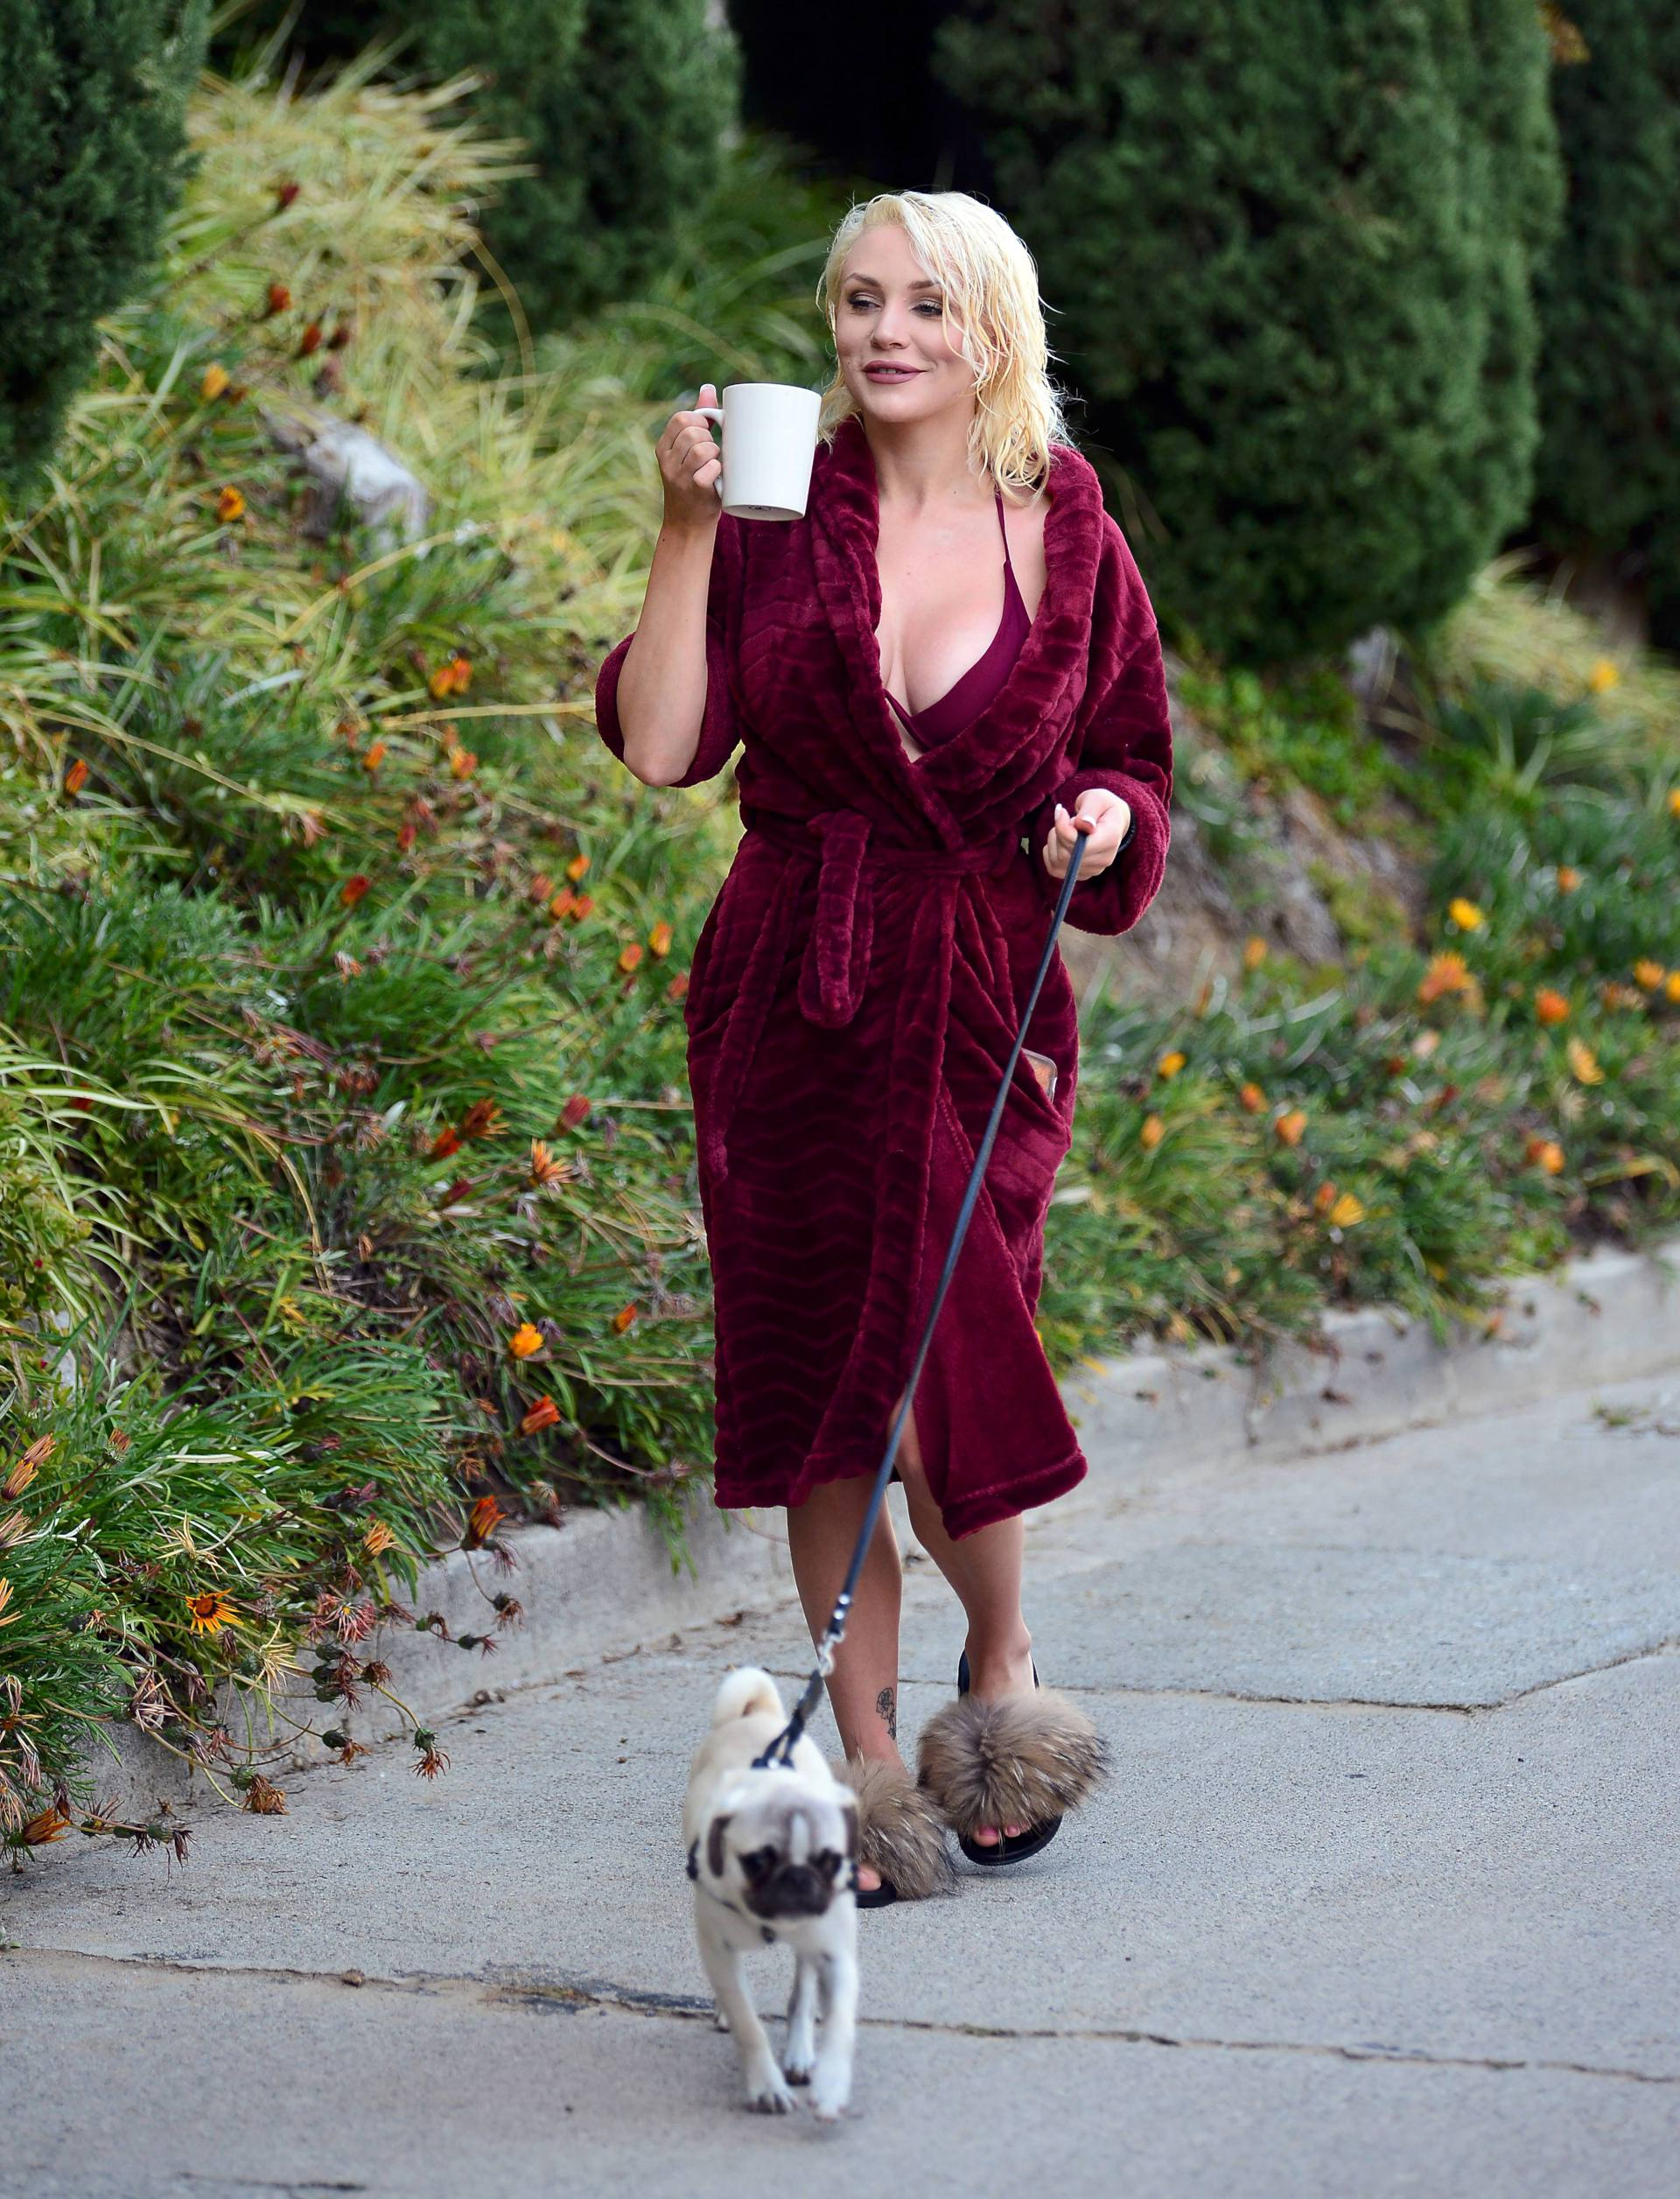 Courtney Stodden Sexy Boobs In Risque Robe Out In Los Angeles 0016